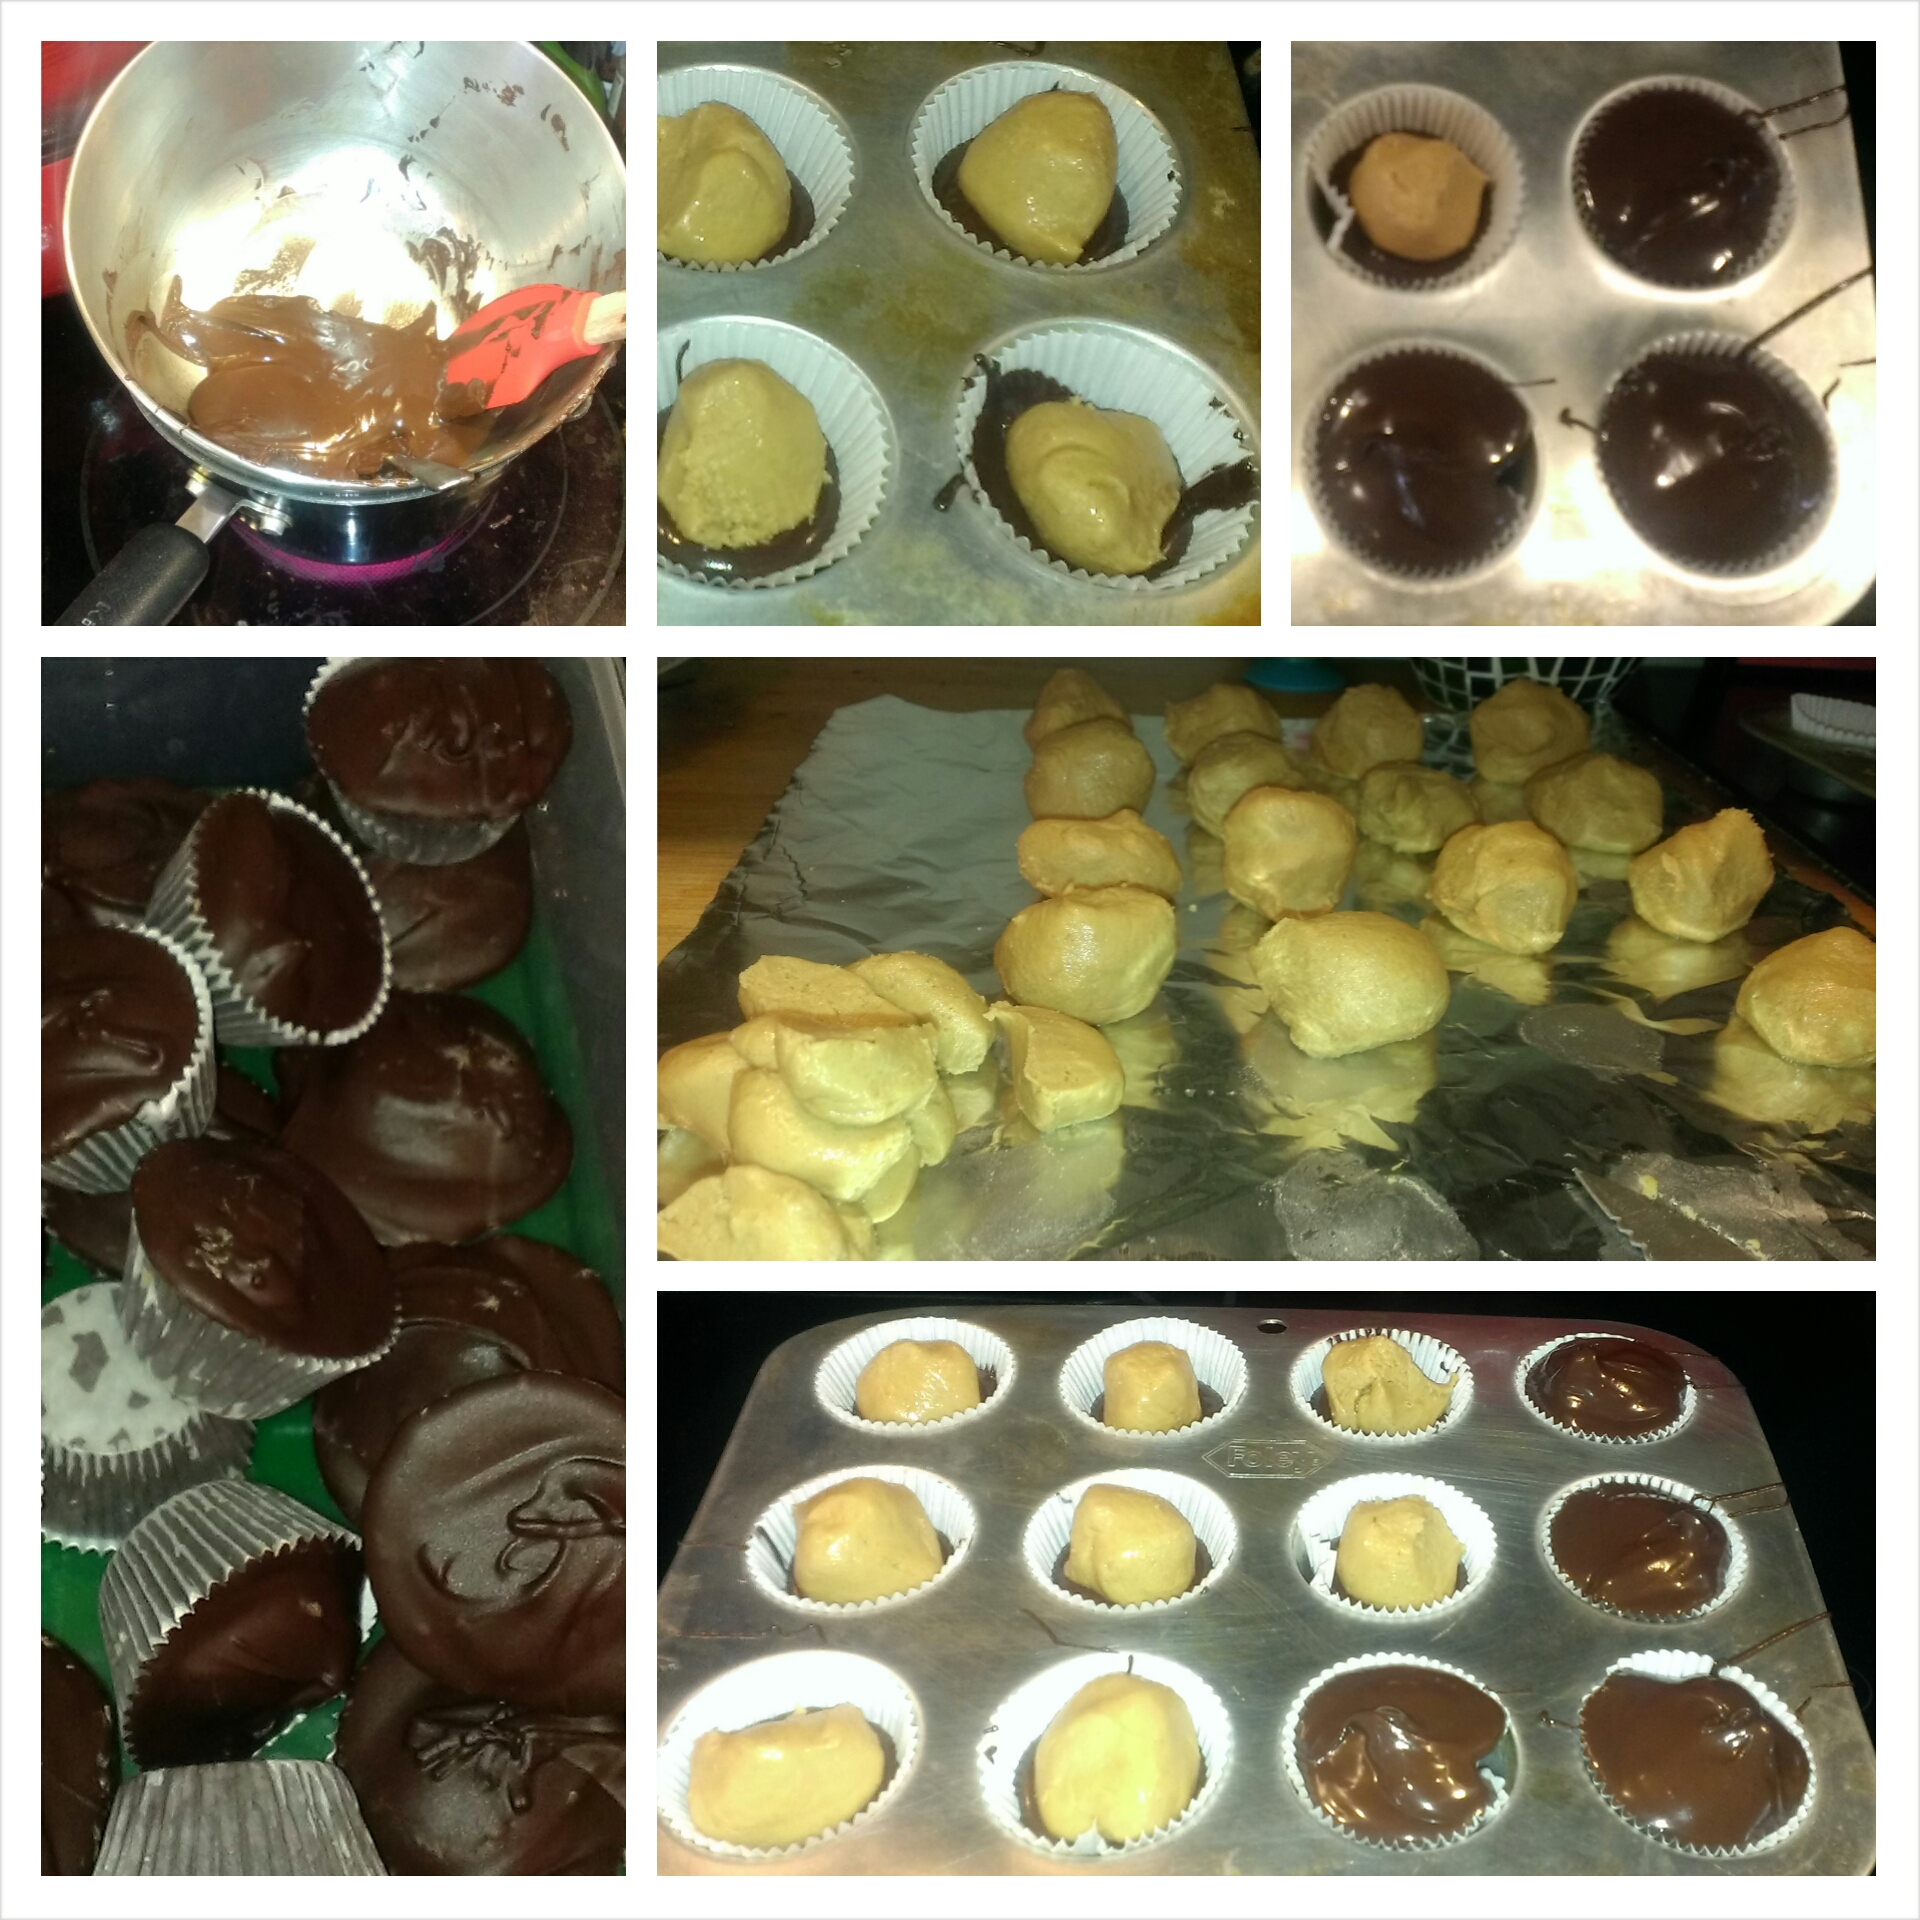 My newest baking obsession - homemade peanut butter cups!